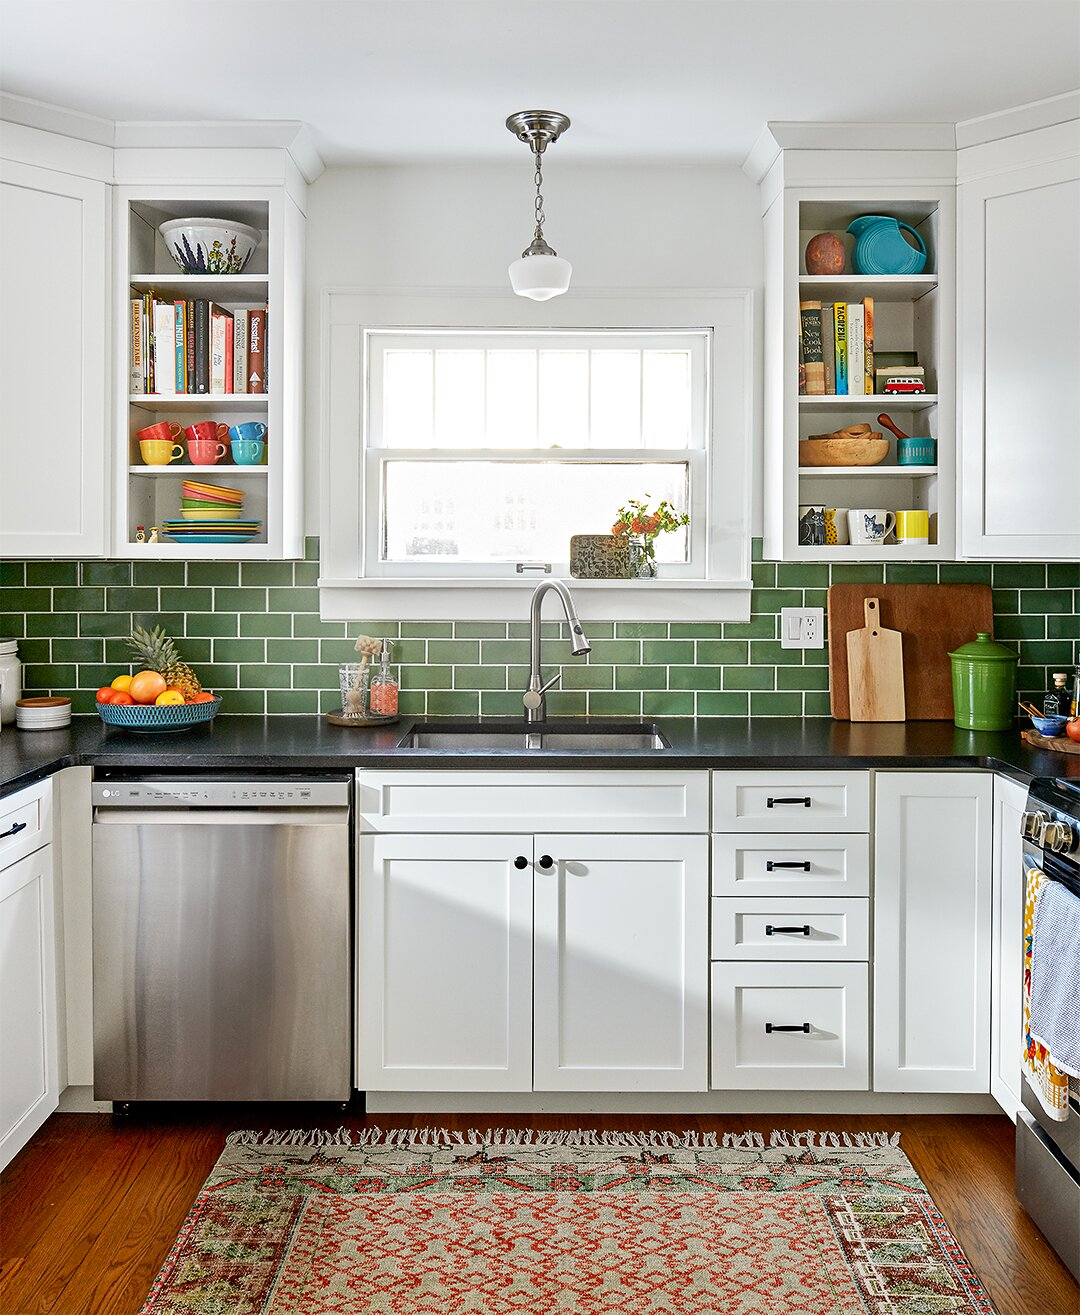 Improve Your Home In Just A Few Days With These 32 Weekend Projects Better Homes Gardens